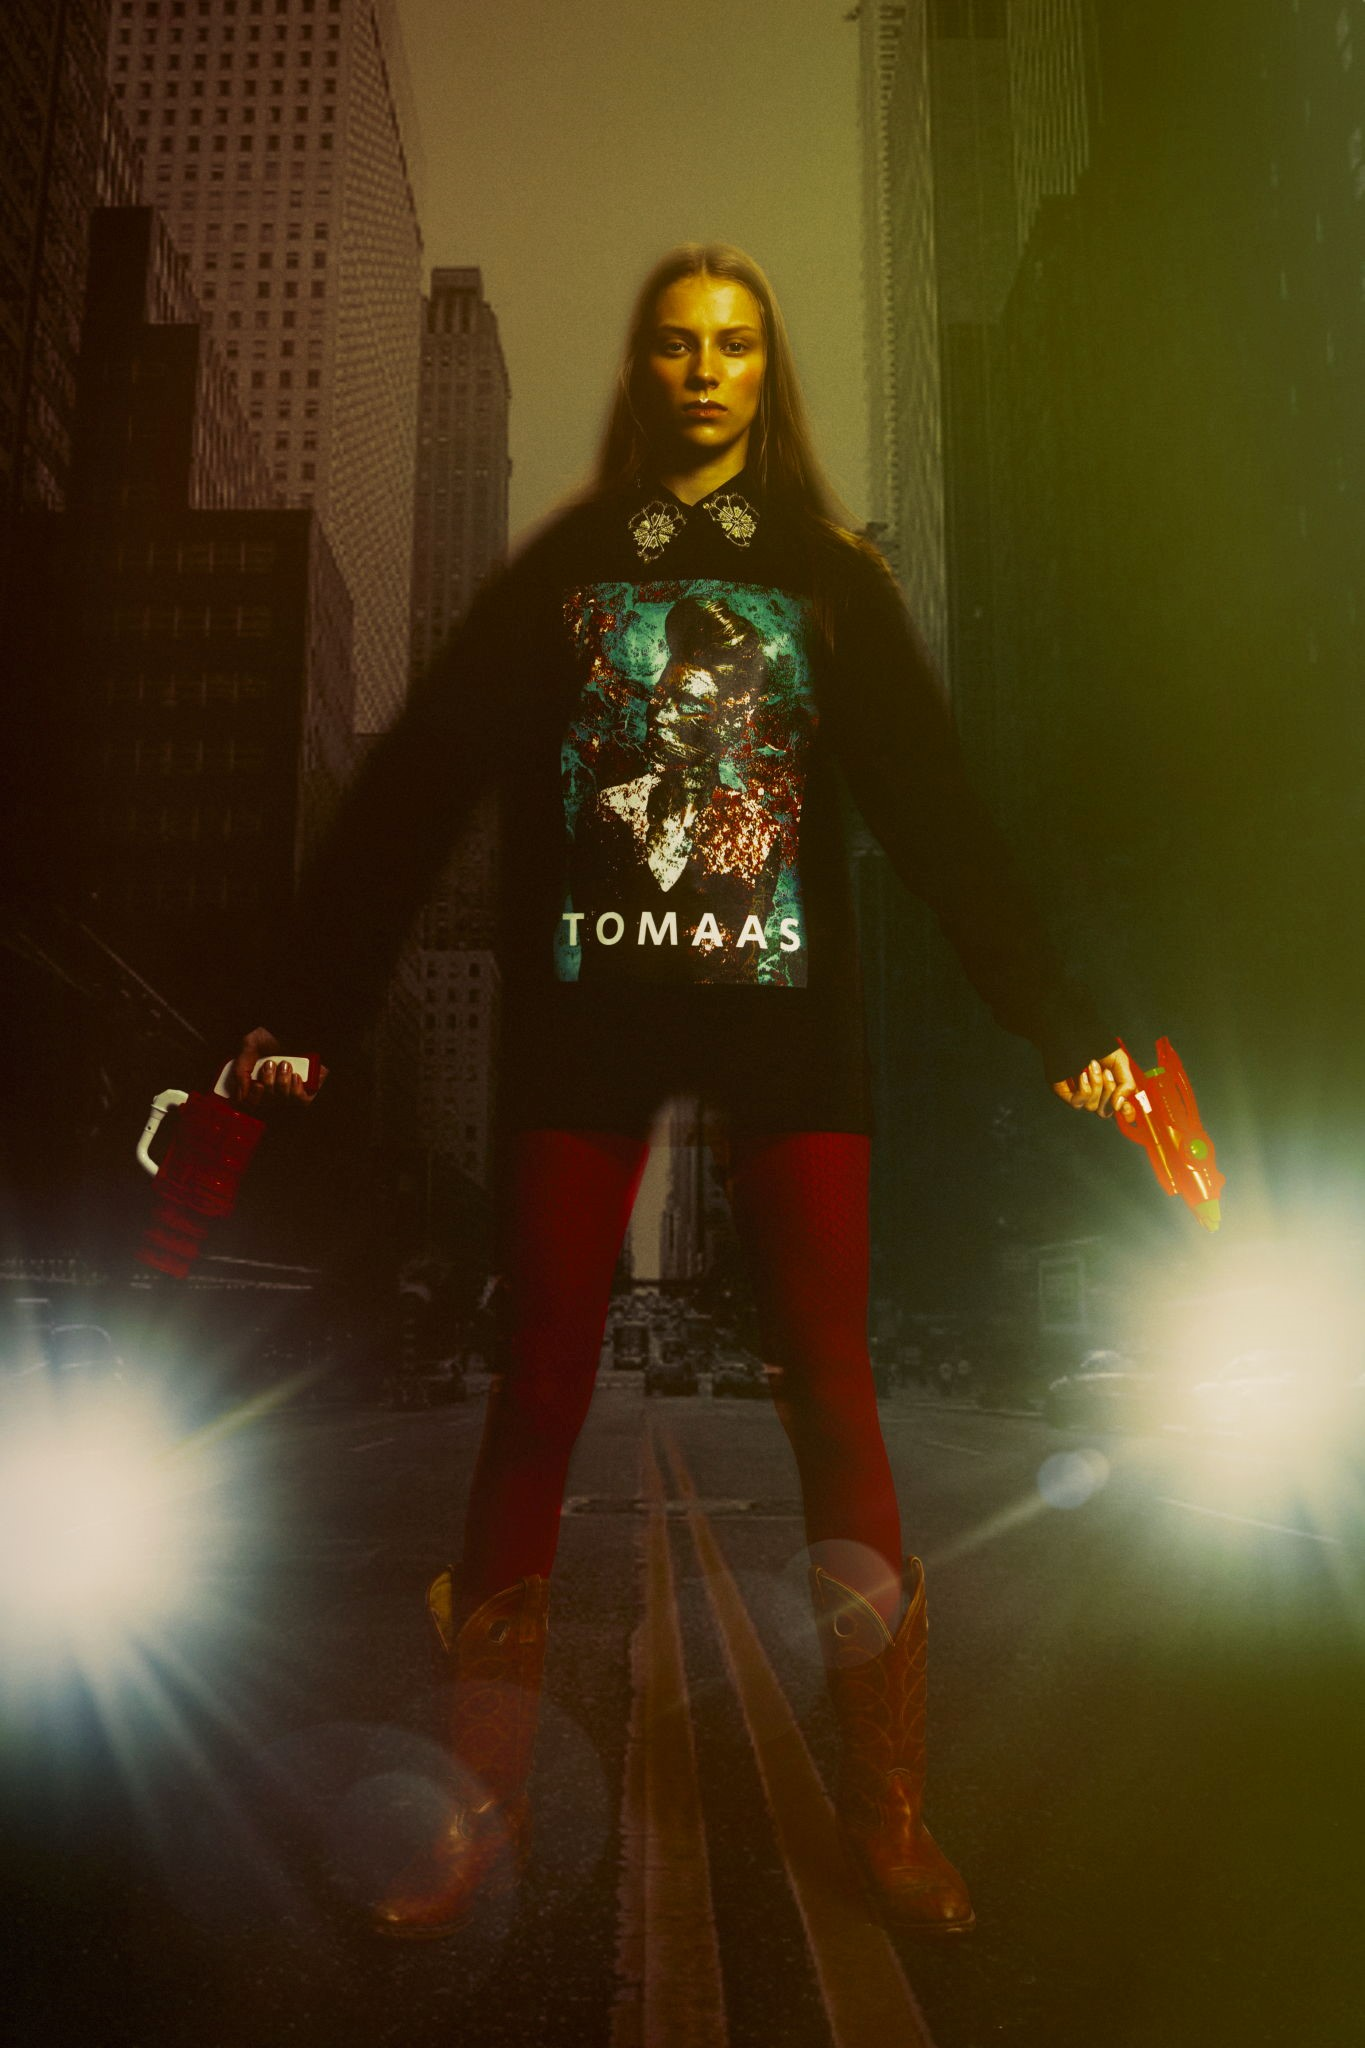 sweatshirt : tomaas boots and shirt : vintage